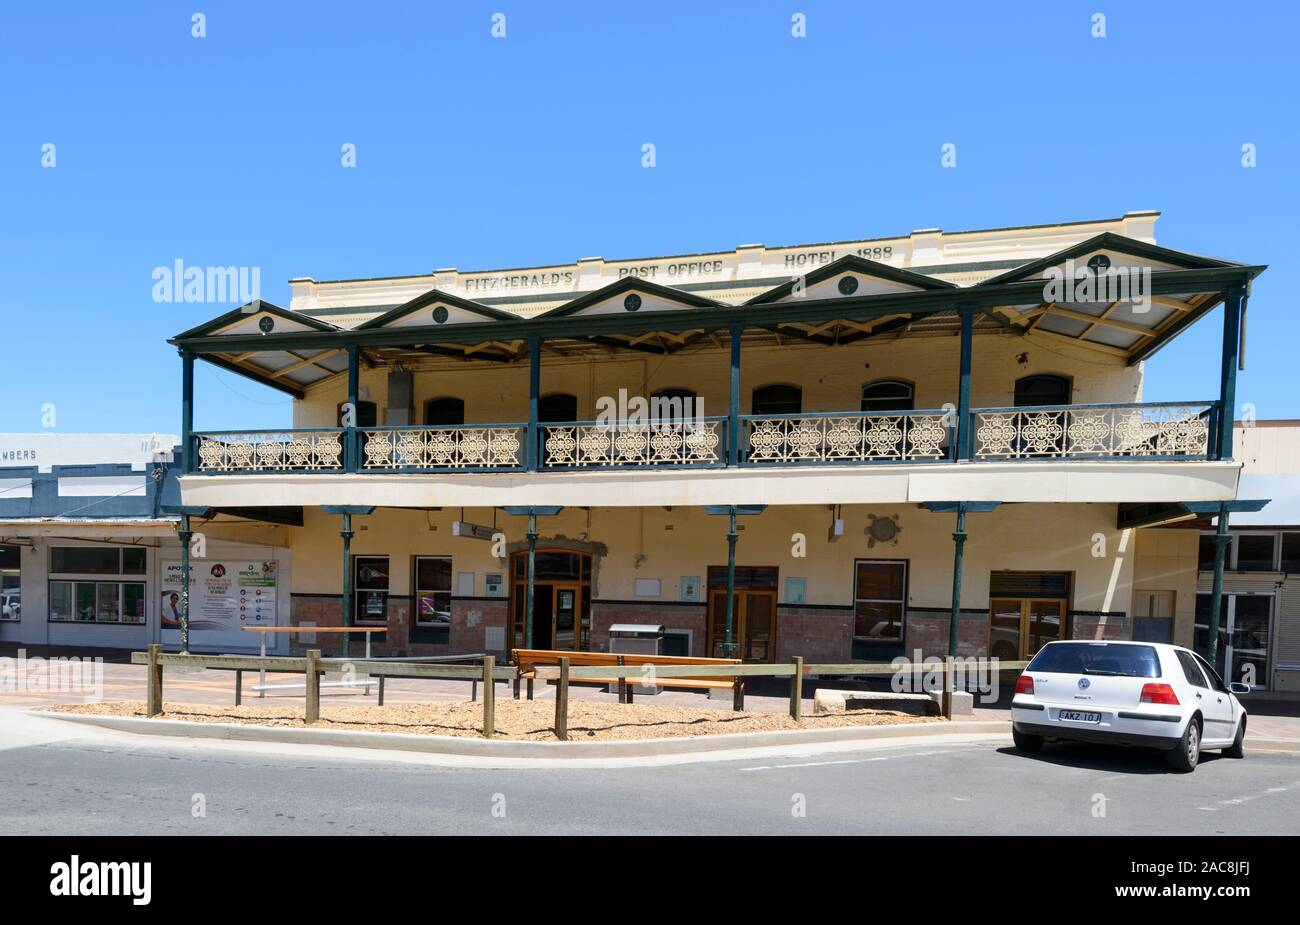 Heritage-listed Fitzgerald's Post Office Hotel building, built in 1888, Bourke, New South Wales, NSW, Australia Stock Photo